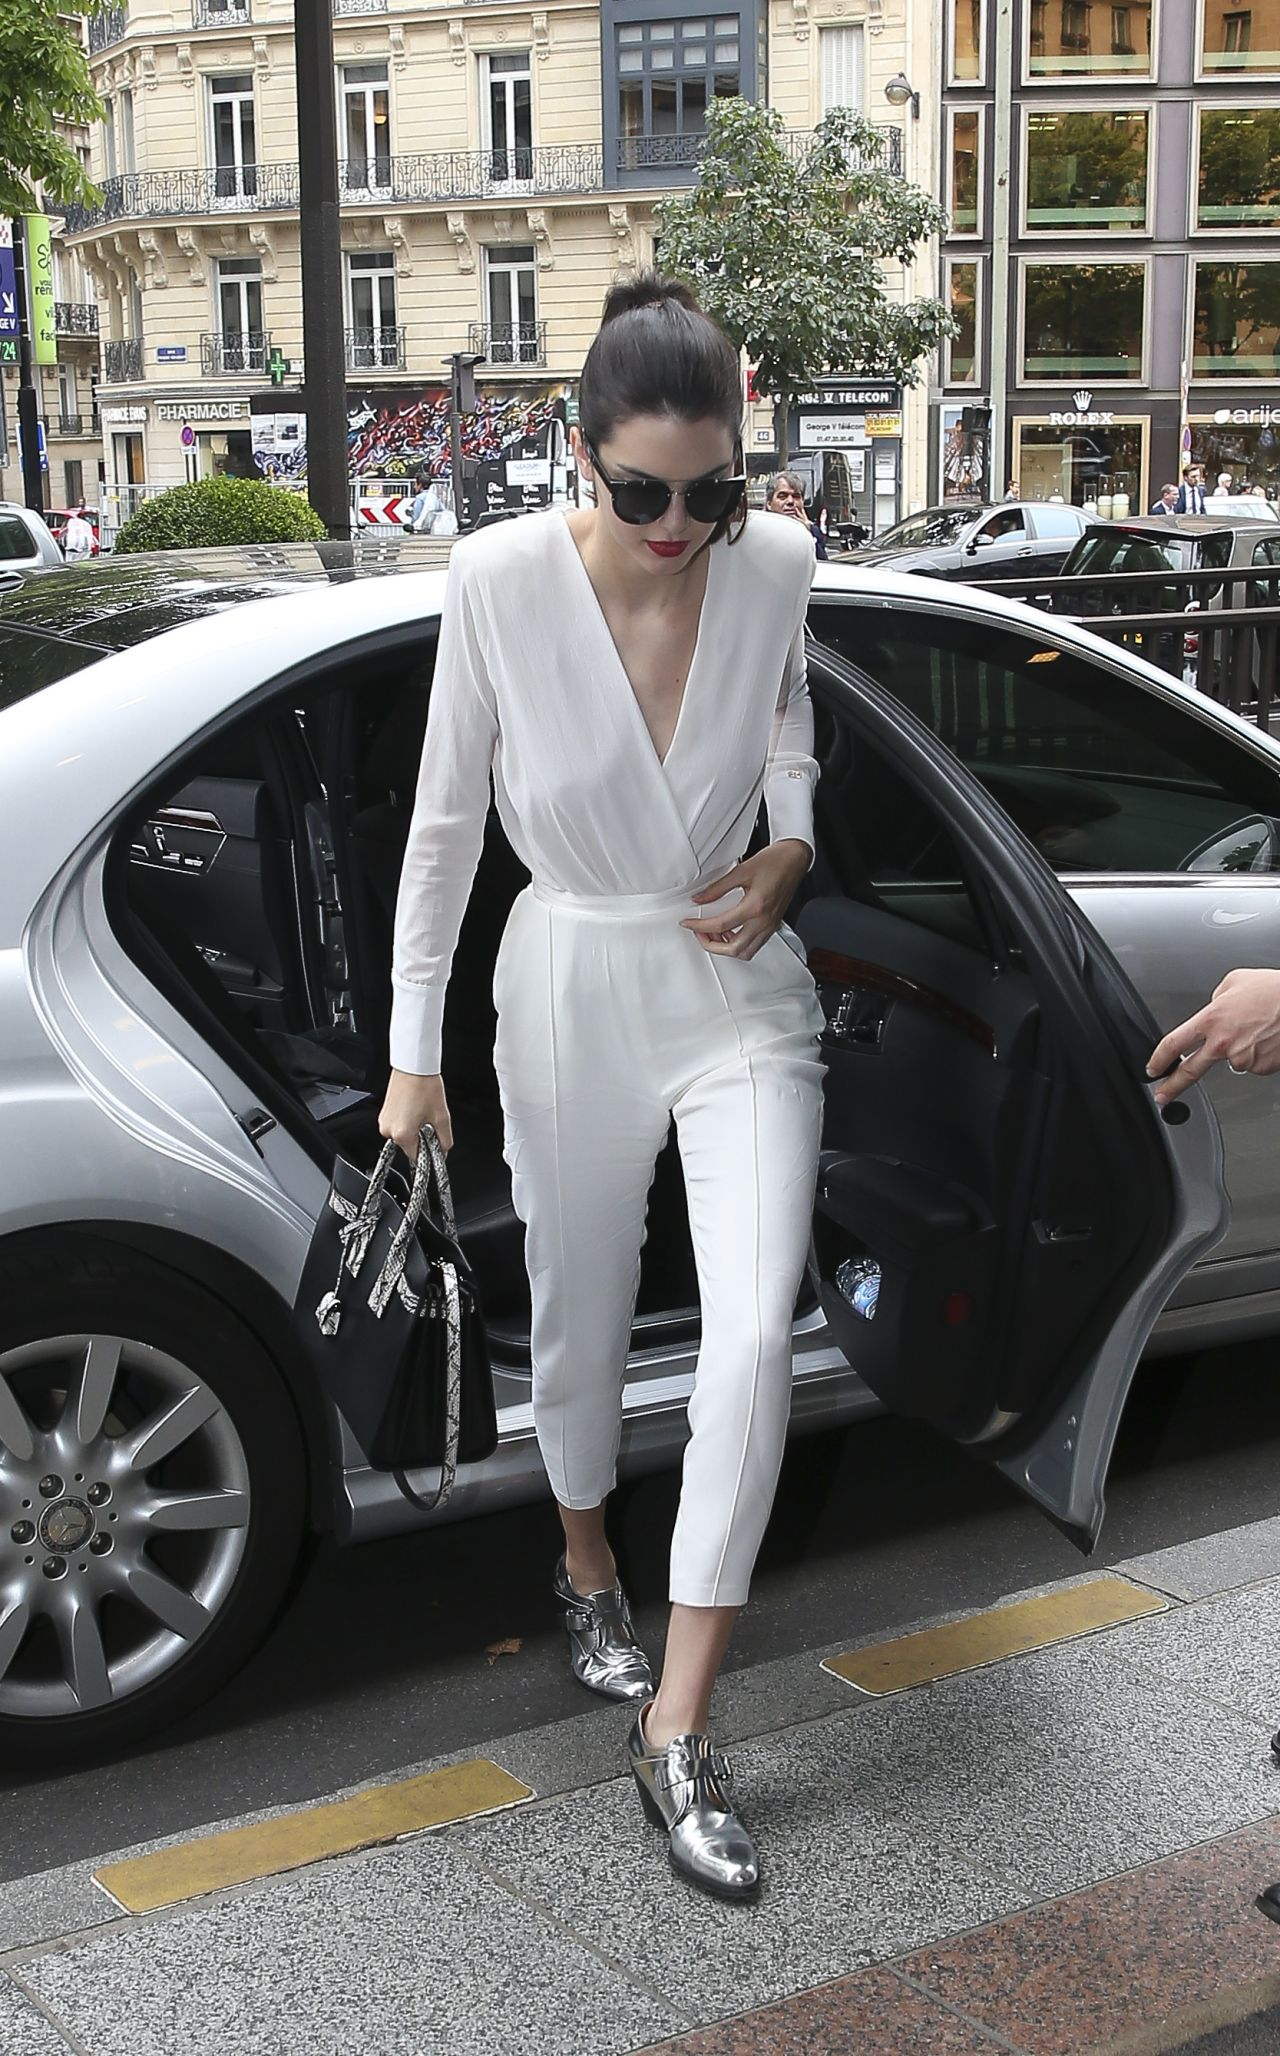 kendall-jenner-arriving-leaving-the-chanel-fashion-show-in-paris-july-2015_